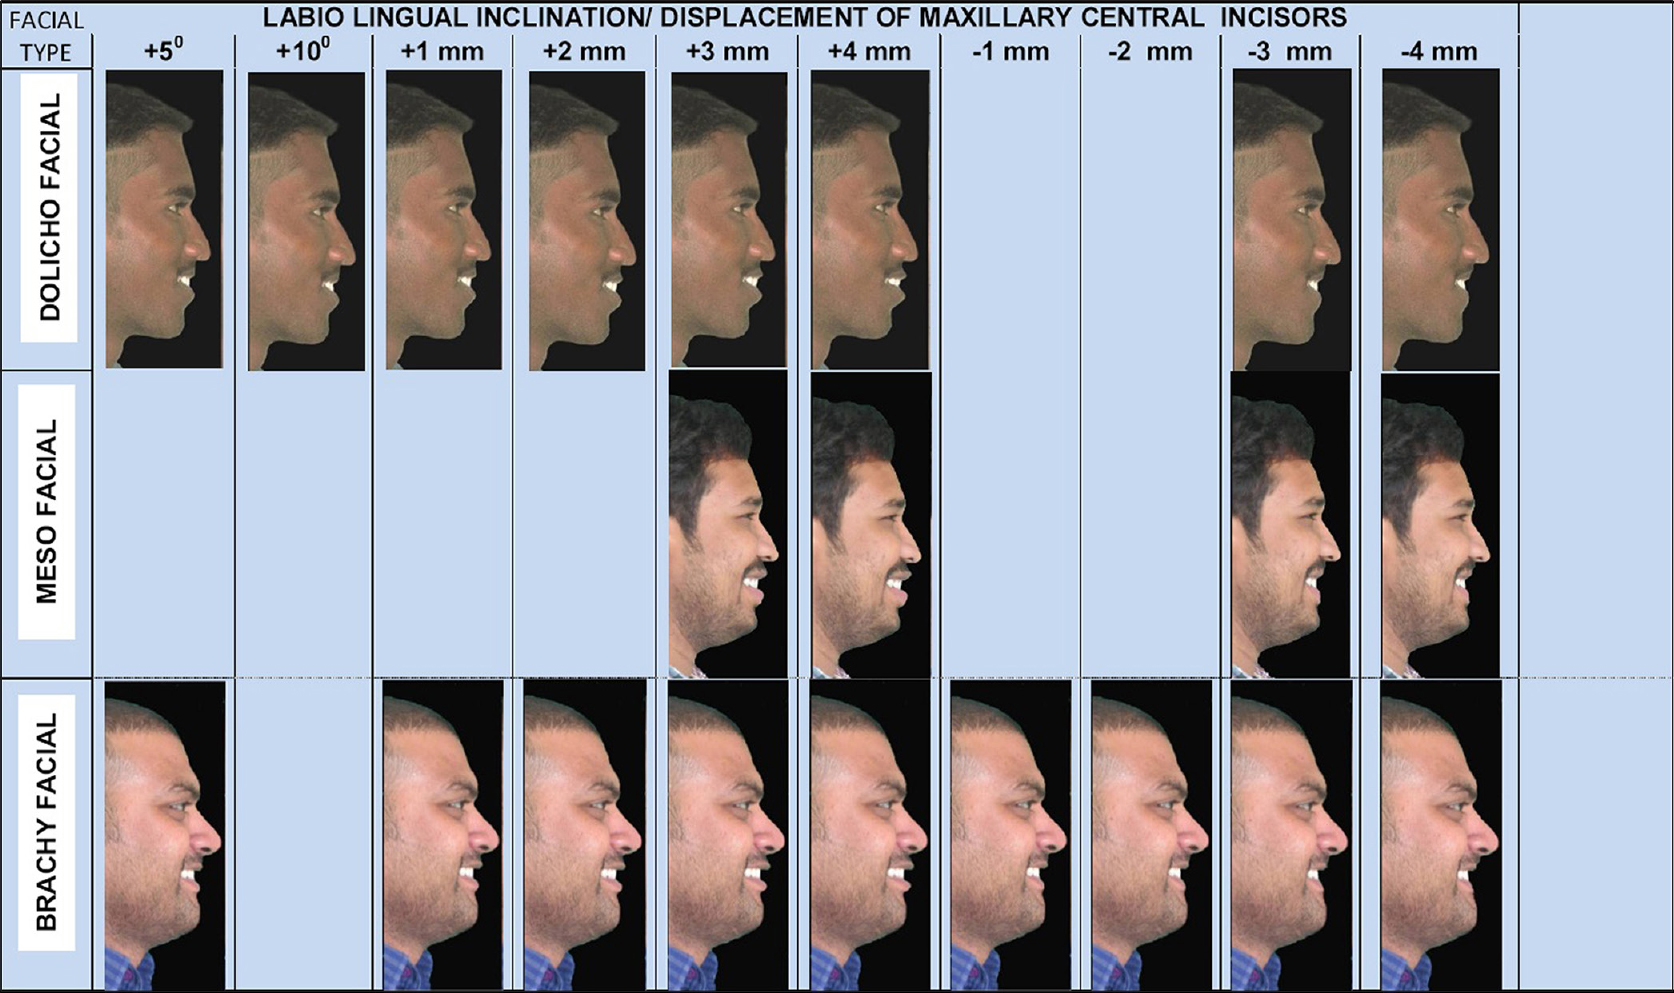 Figure 7: Unharmonious smiling profiles of three different facial patterns